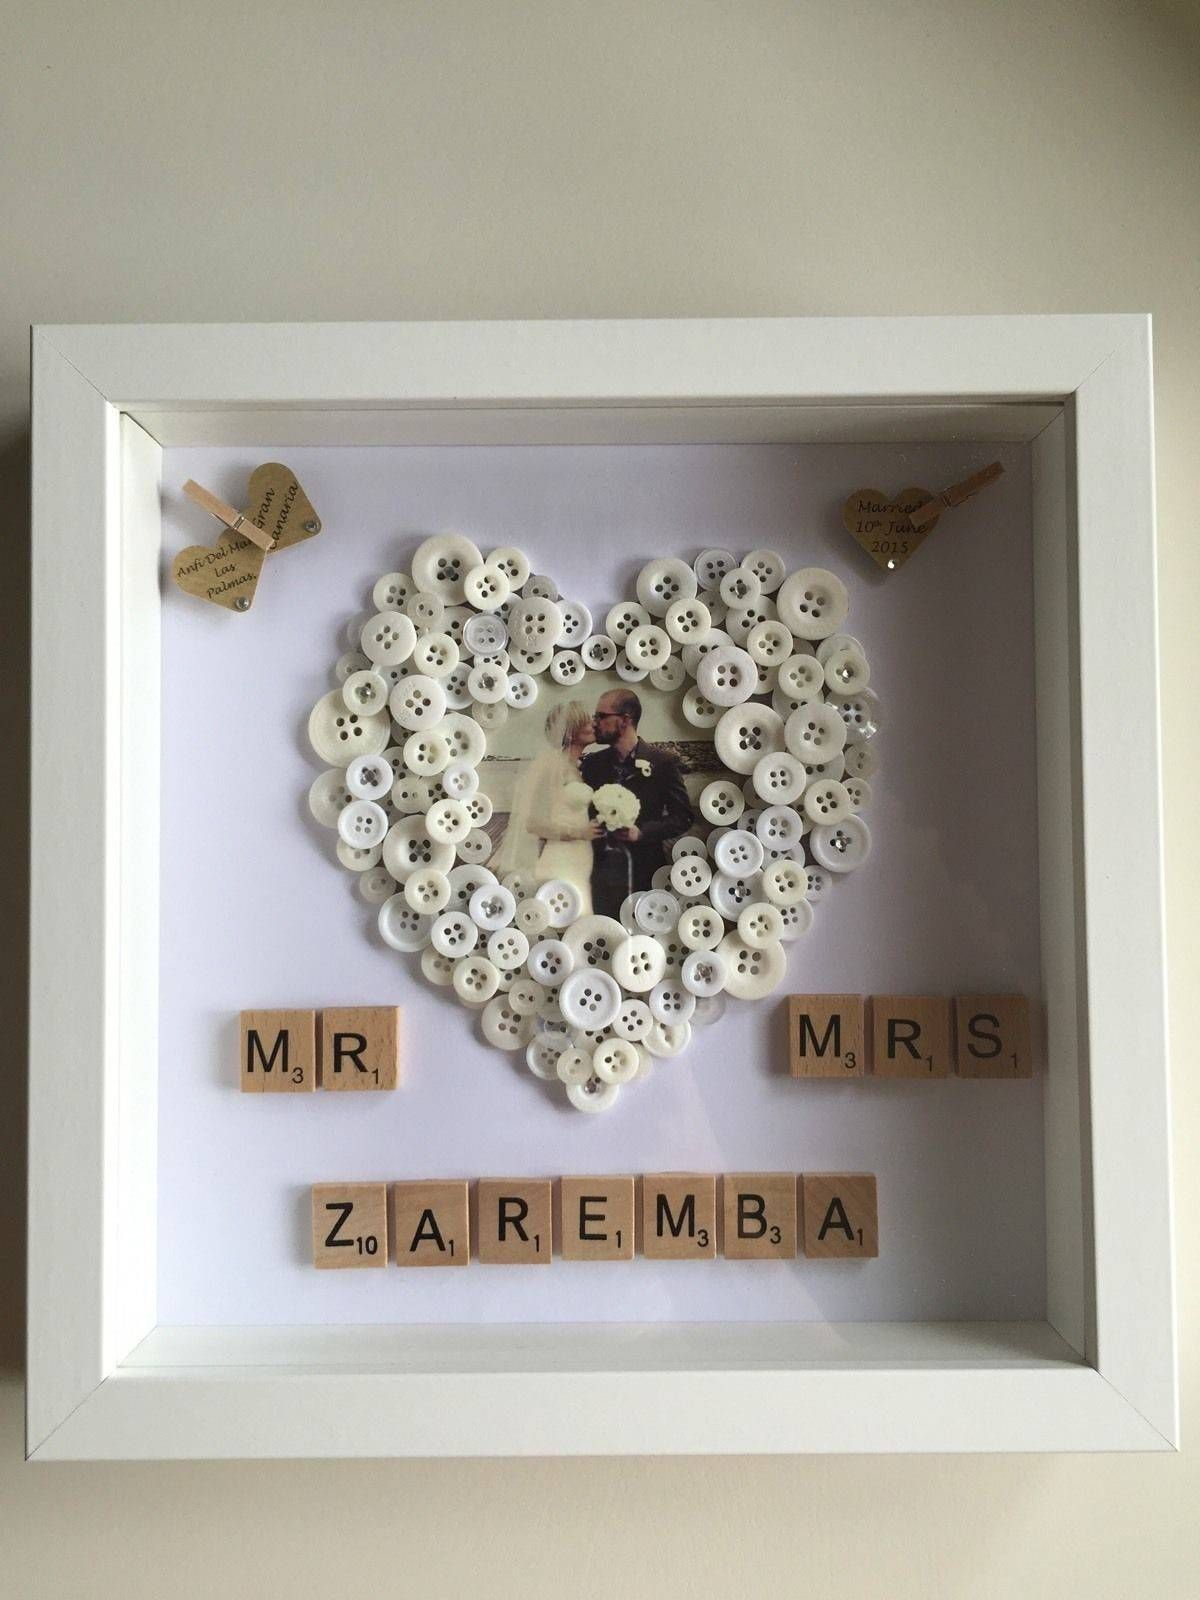 Inspirational Homemade Picture Frame Ideas Https Homecreativa Com Inspirational Homemade Pic In 2020 Homemade Picture Frames Homemade Pictures Wedding Frame Gift